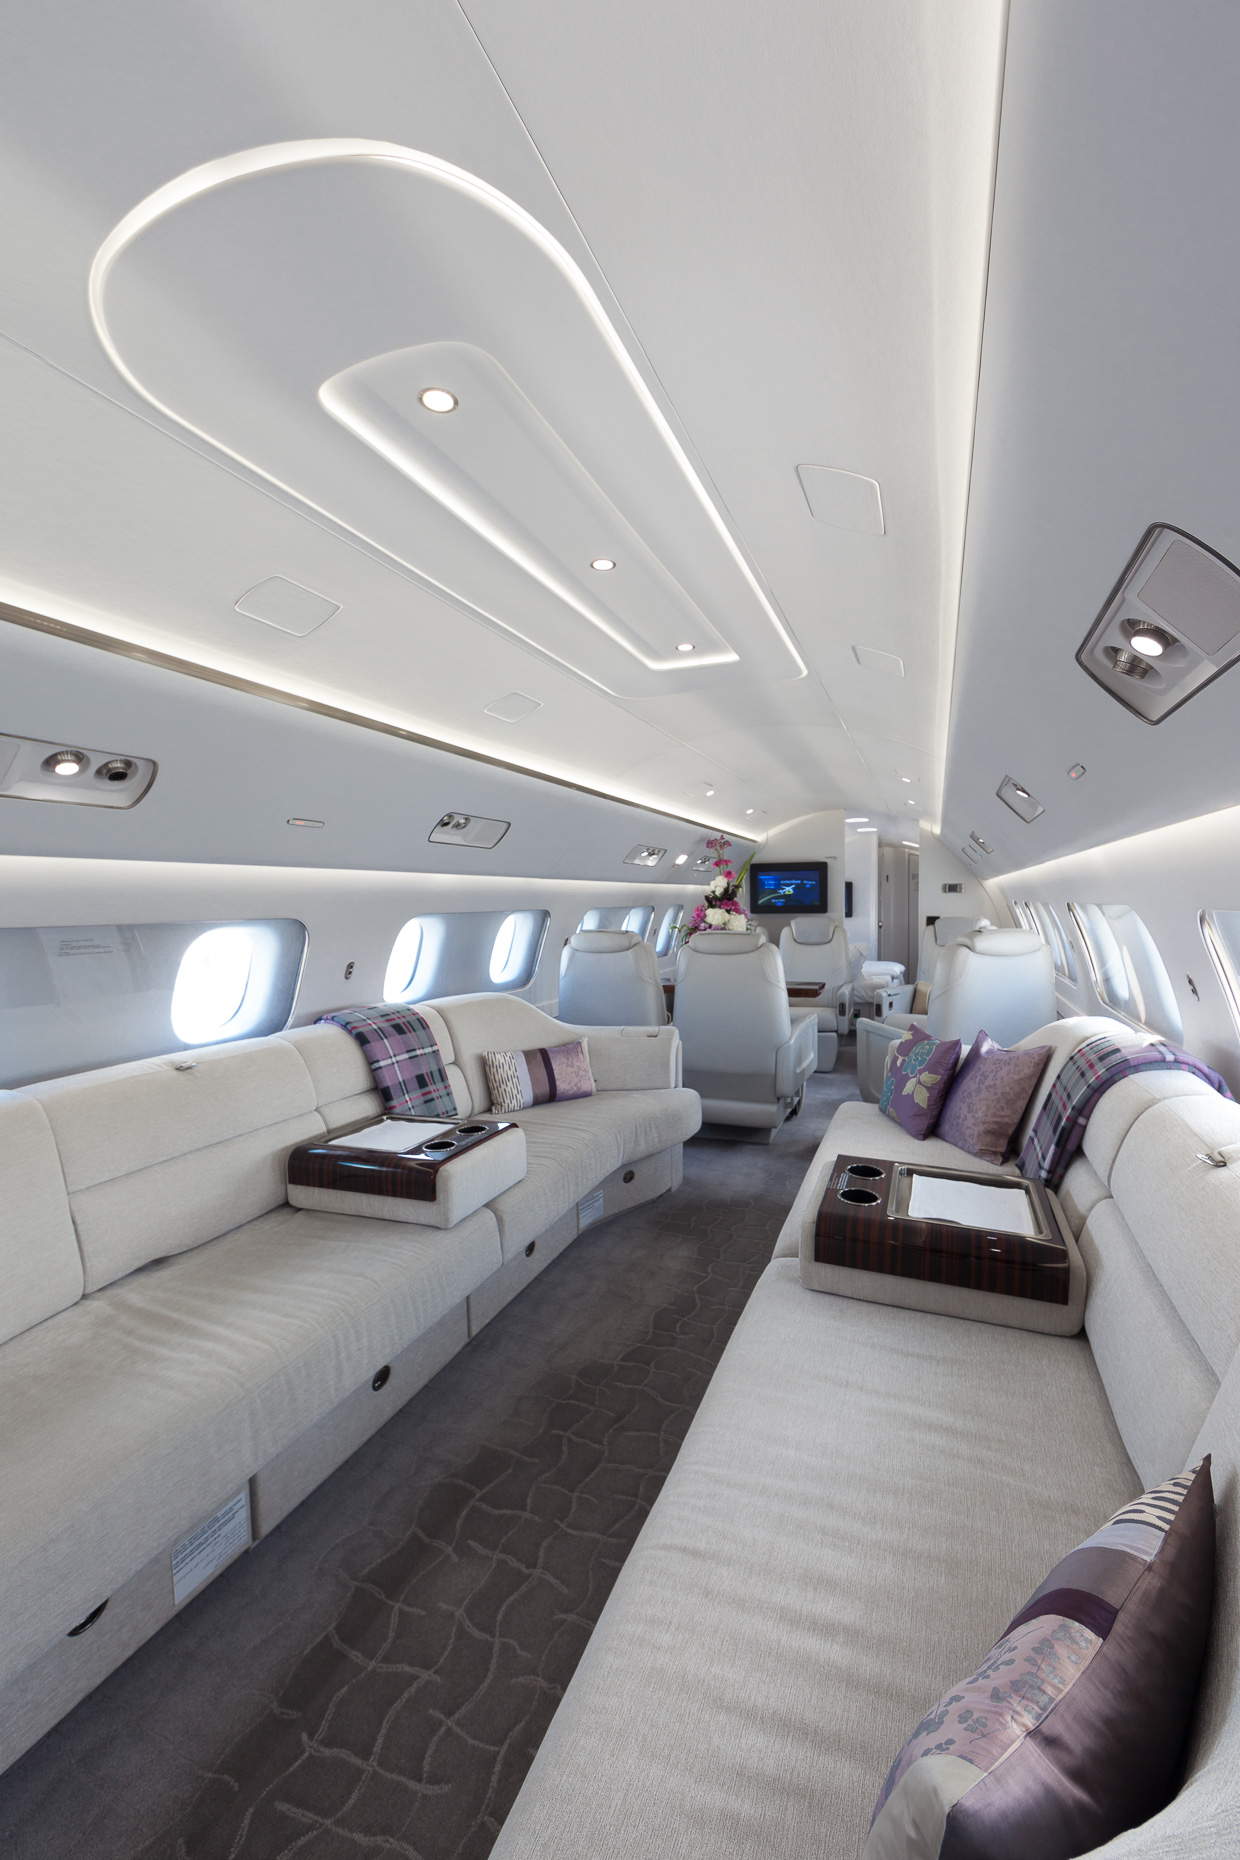 Luxurious Private Jet Photoshoot by Oliver Jackson